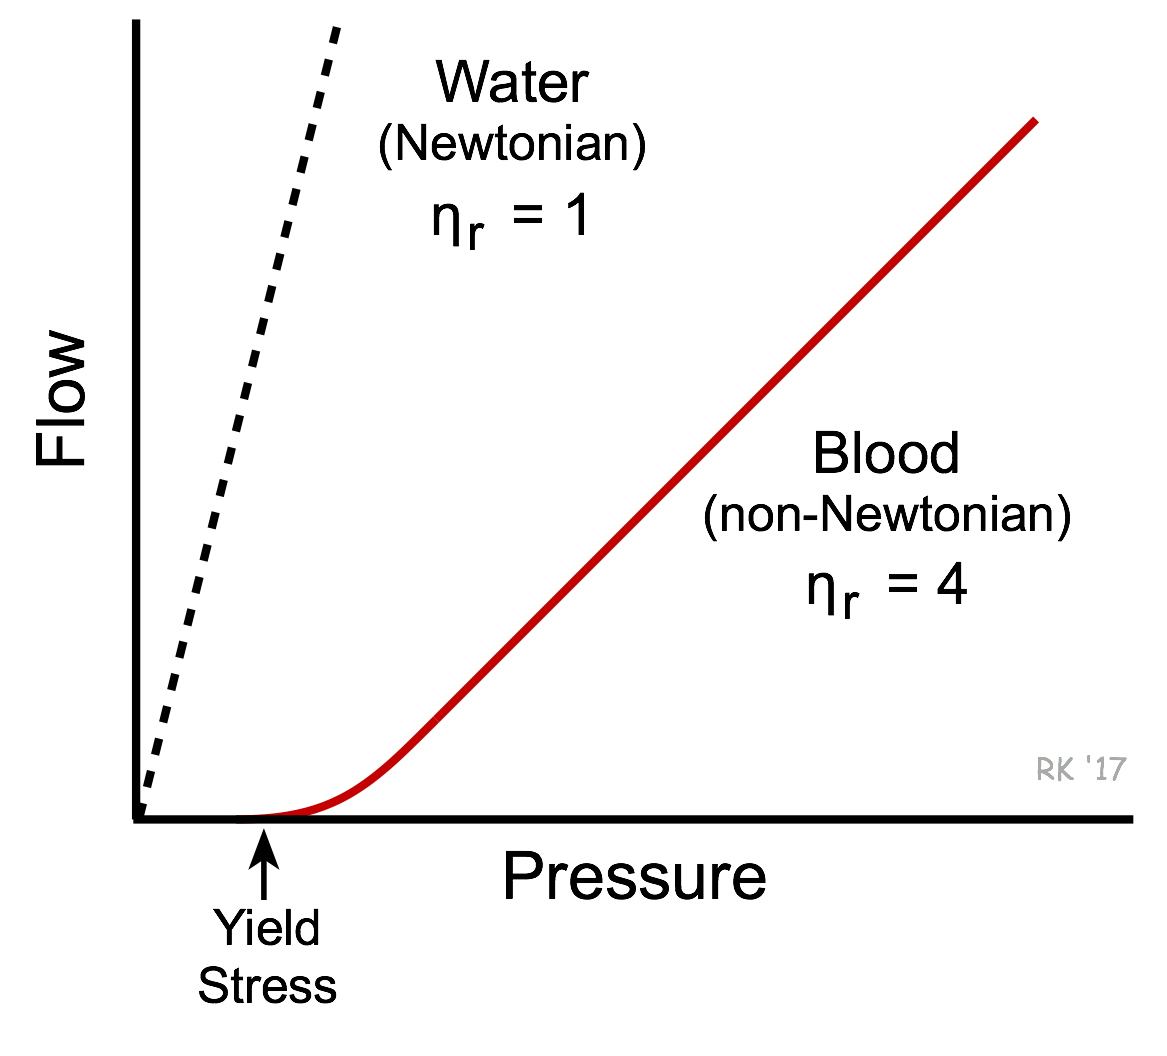 Linear Velocity Of Blood Flow Equation